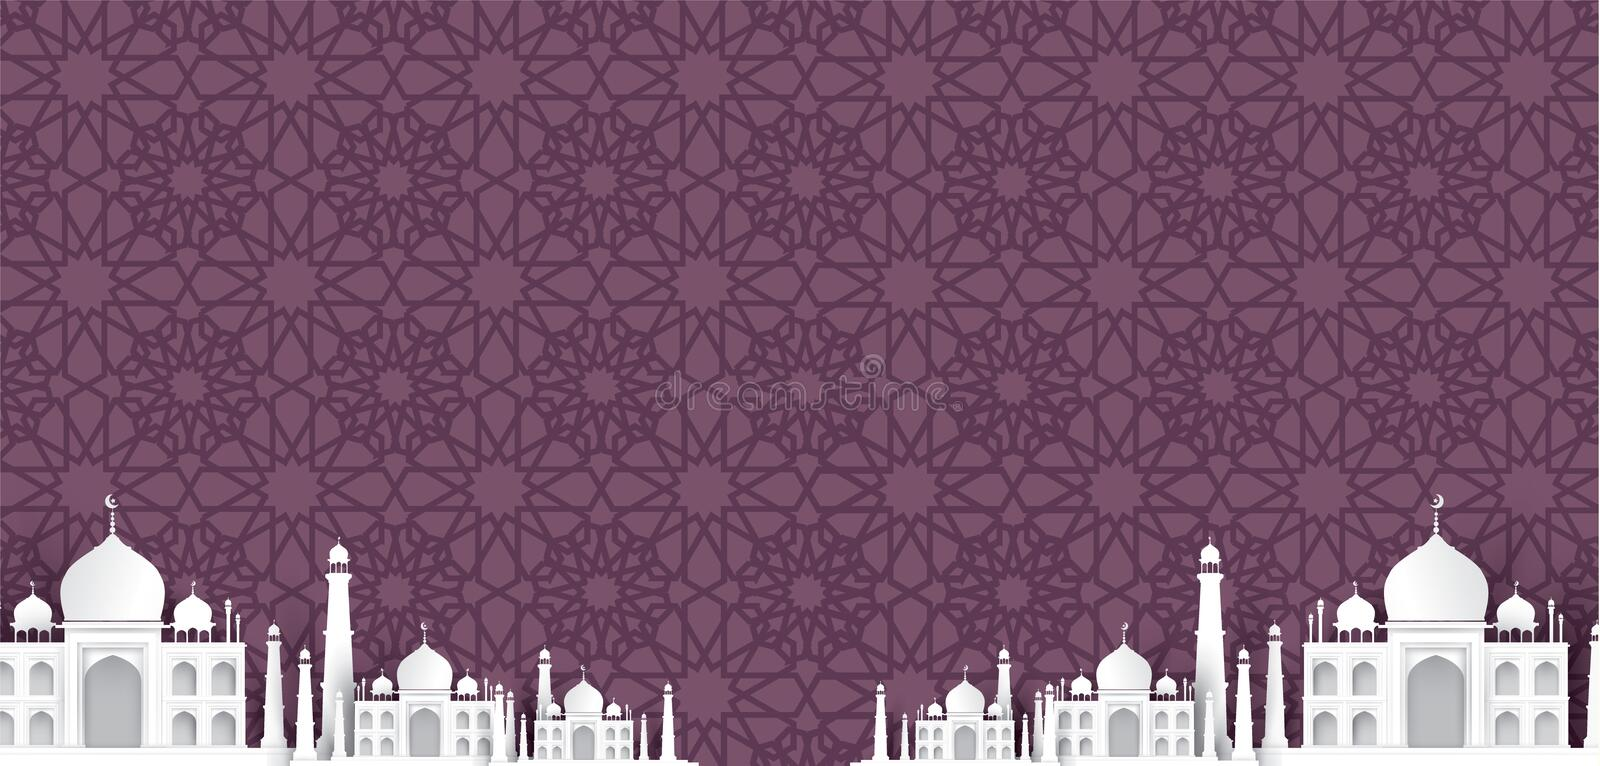 Blank Islamic Background Stock Illustrations – 4,439 Blank Islamic  Background Stock Illustrations, Vectors & Clipart - Dreamstime